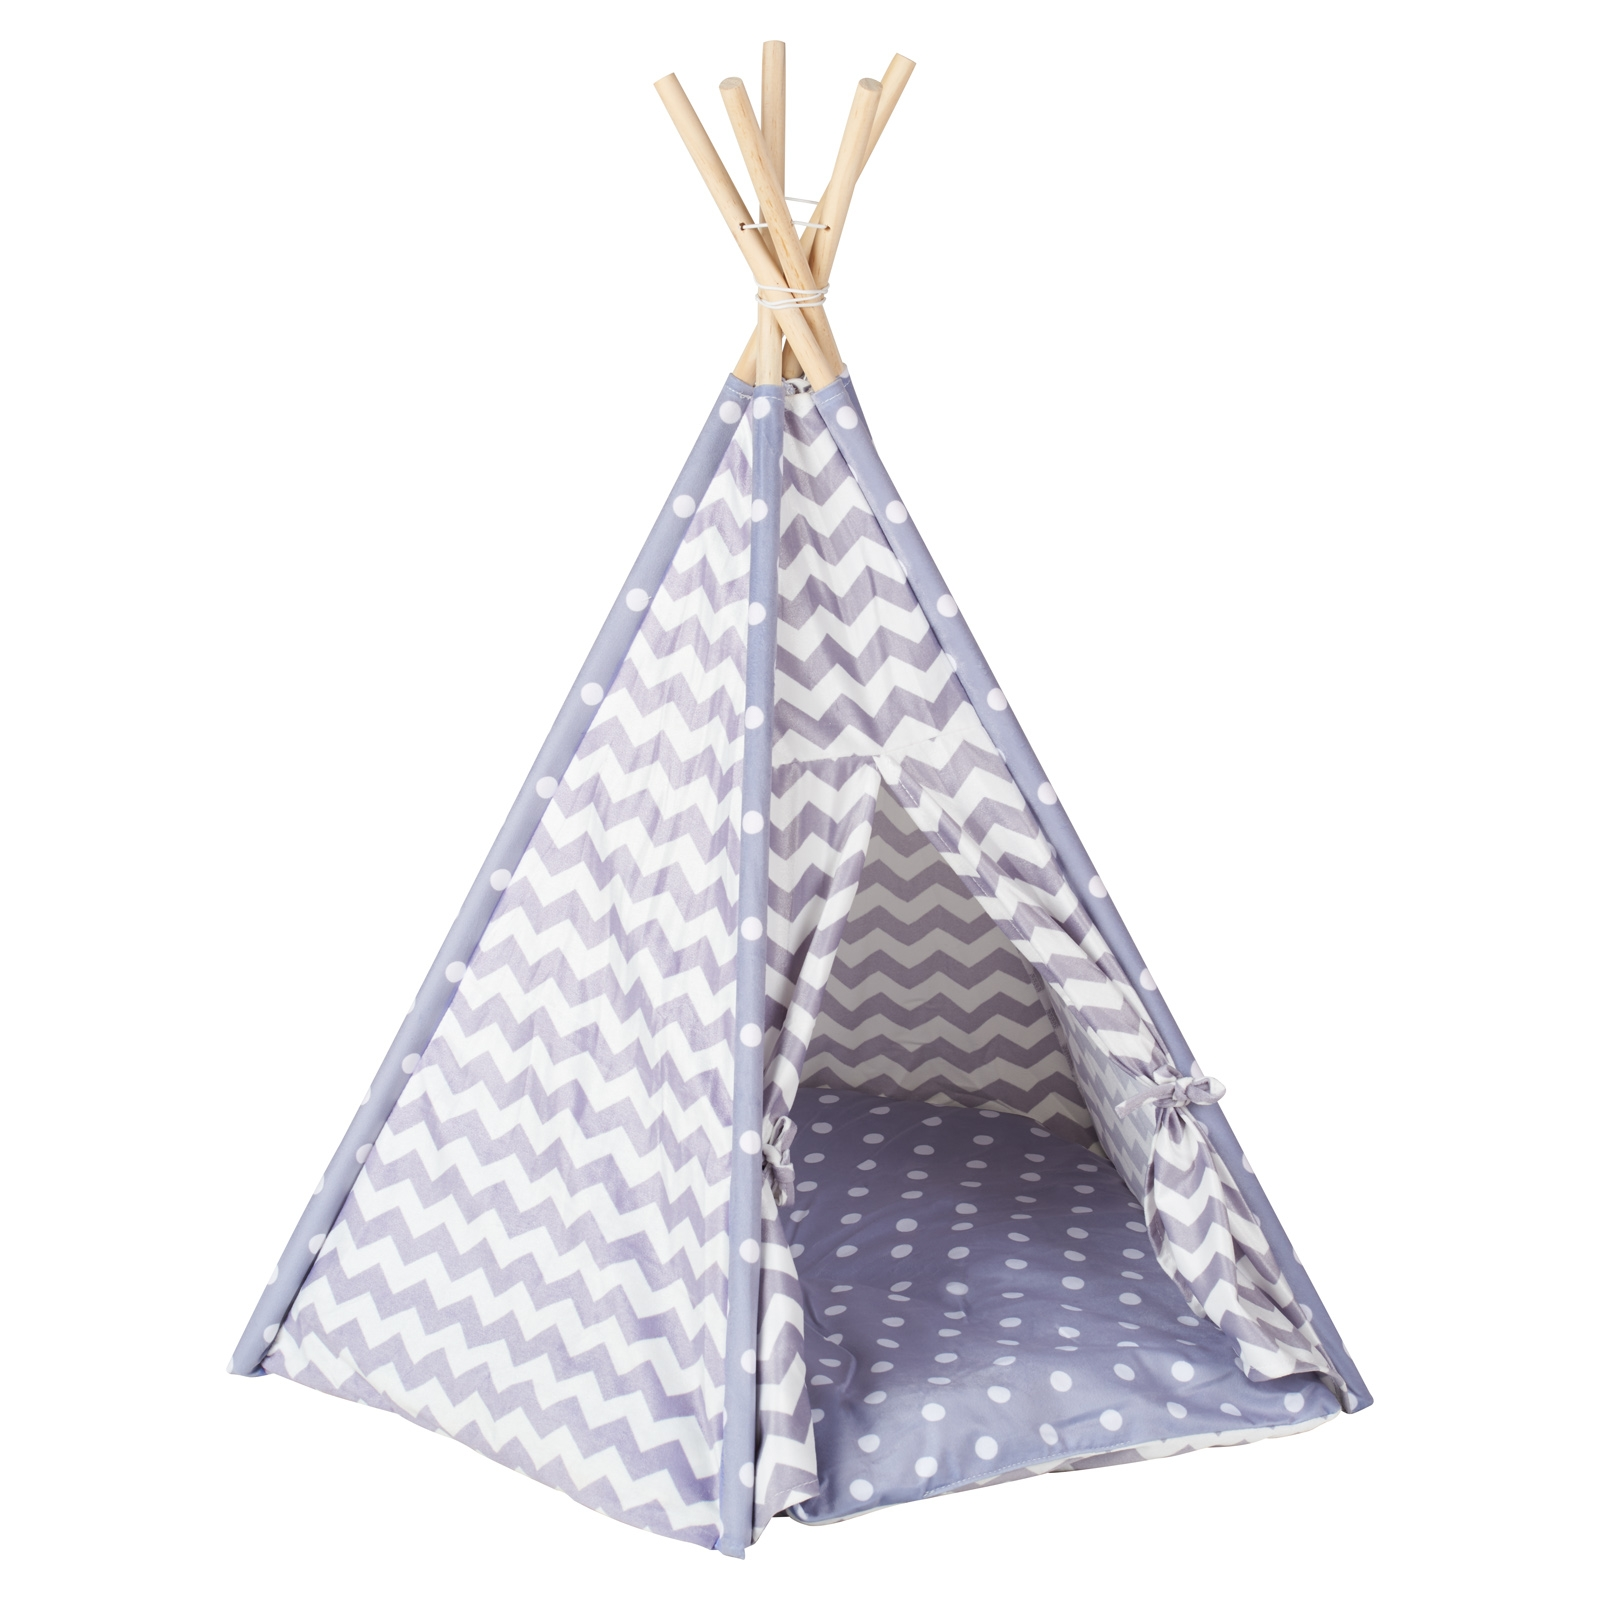 gorgeous grey and white aztec print teepee pet bed with wooden poles and a door that ties back